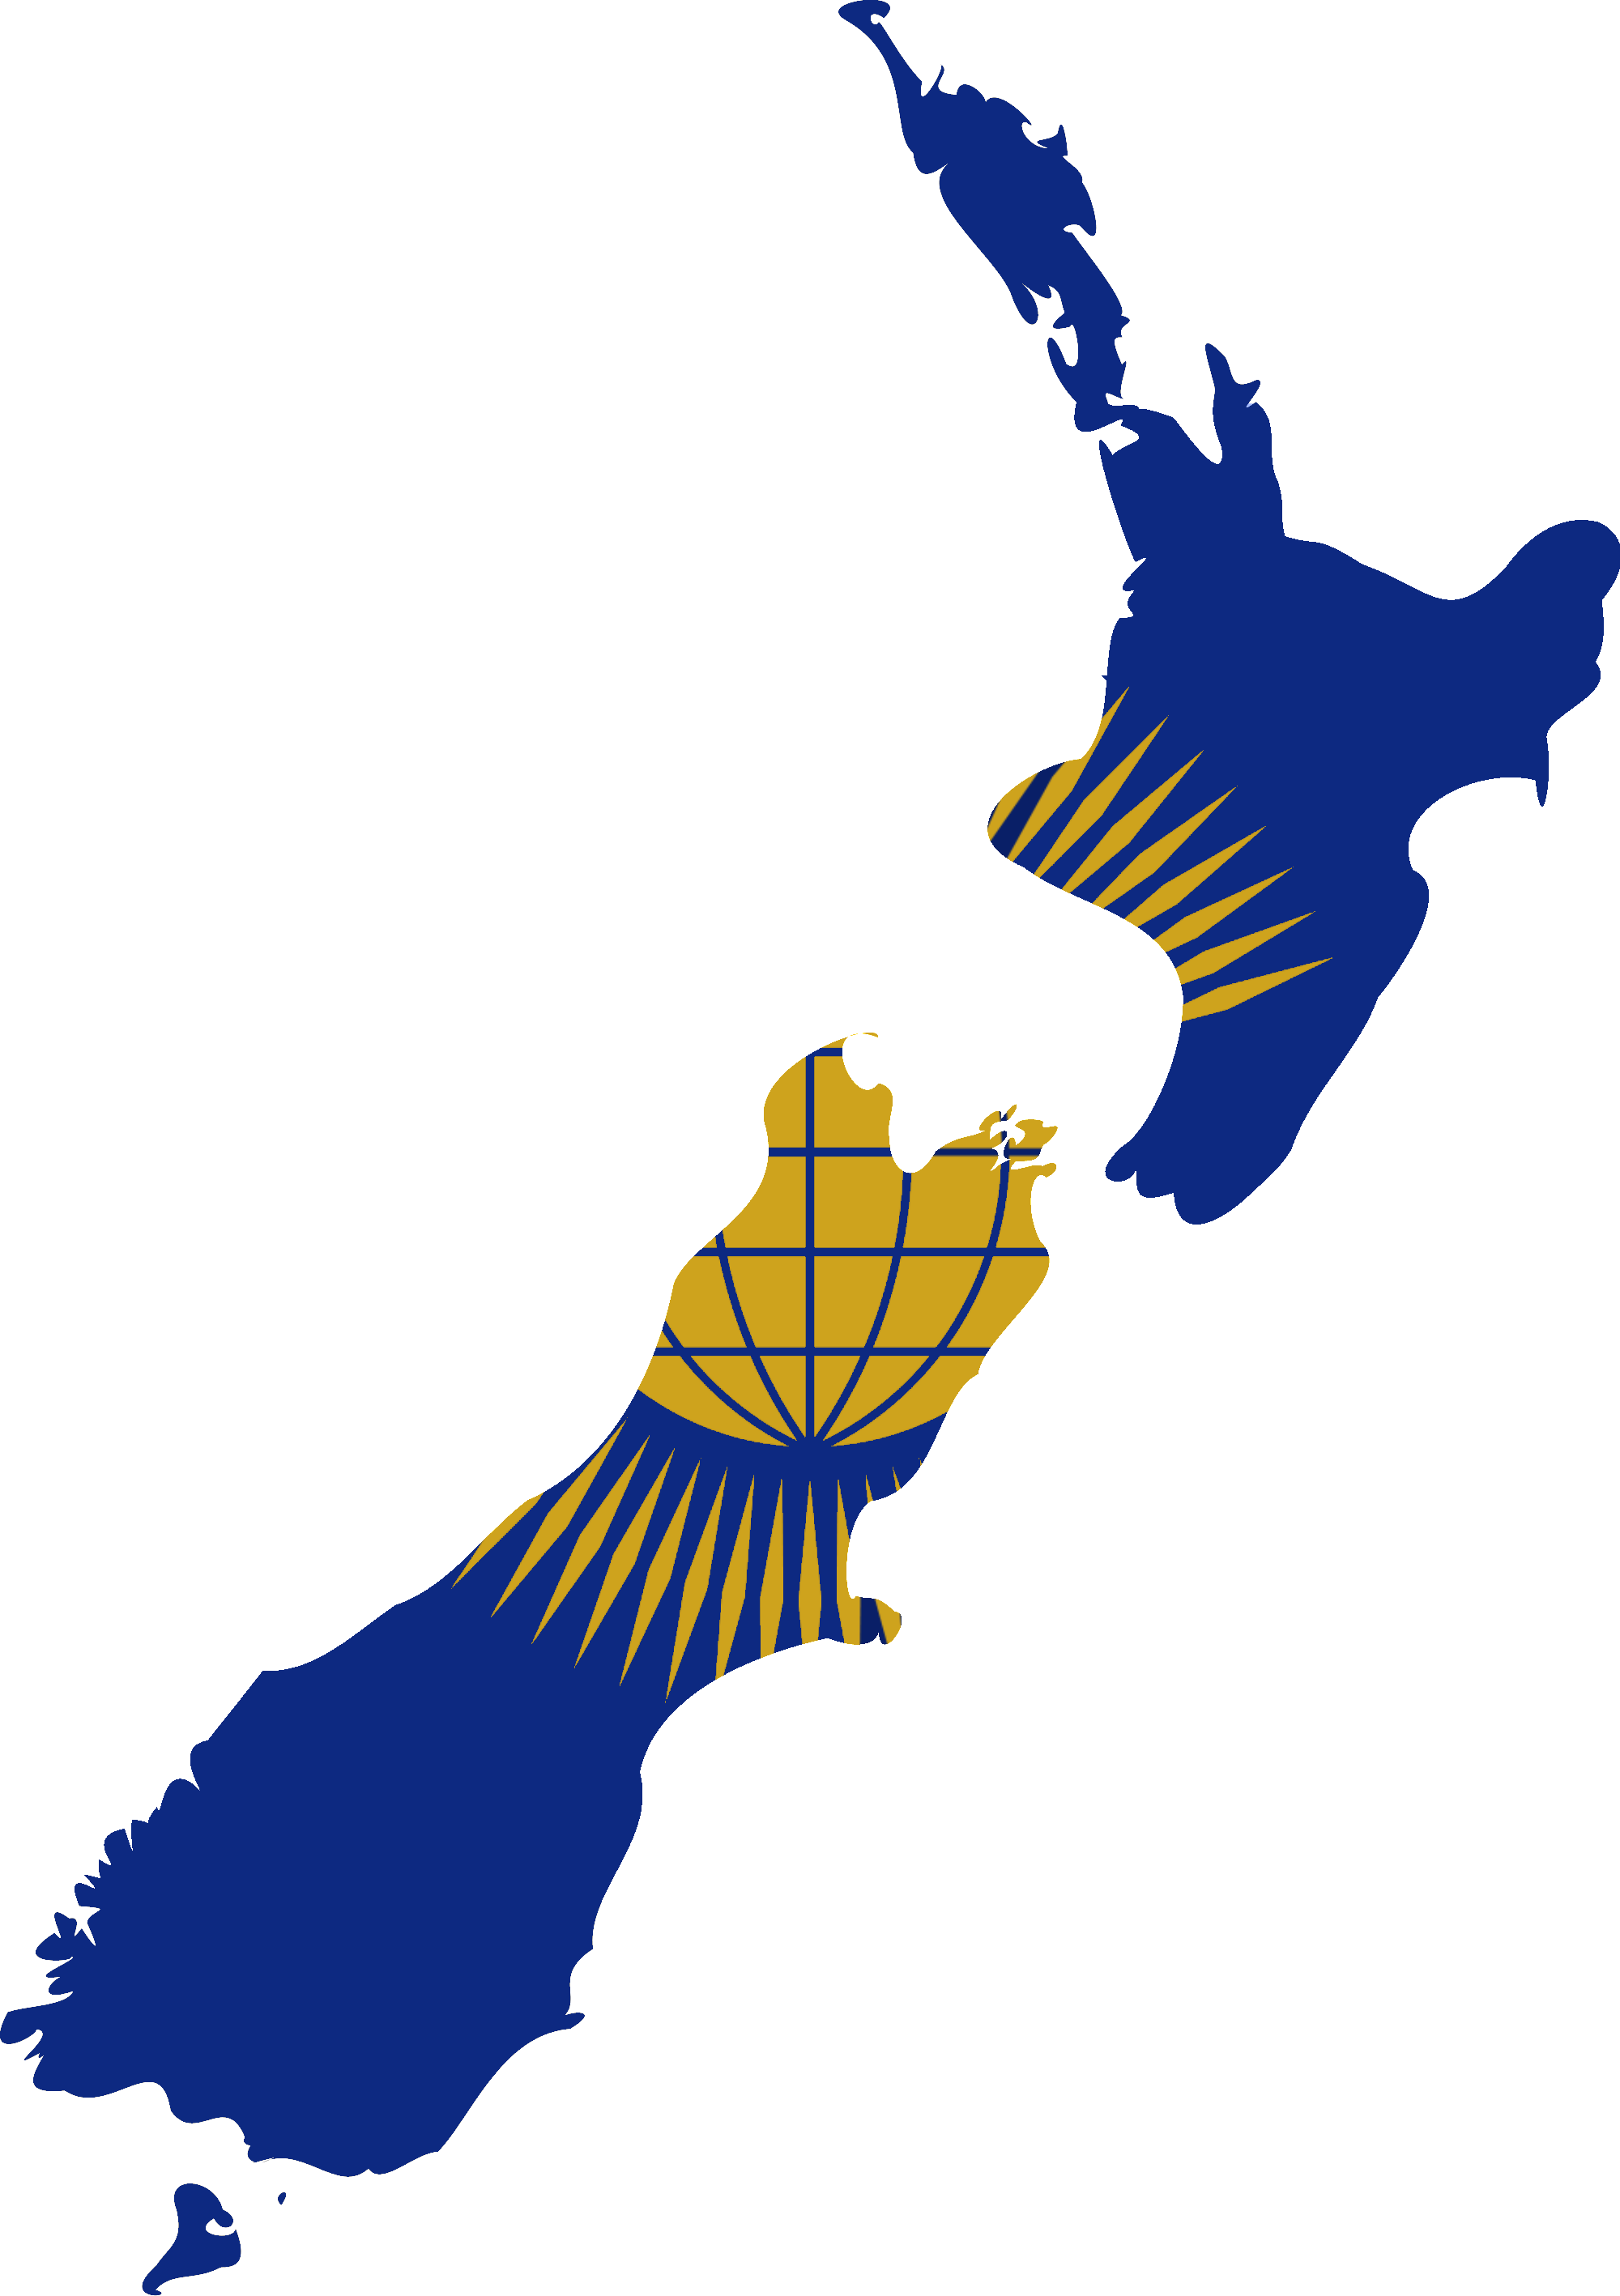 New Zealand PNG - 13202